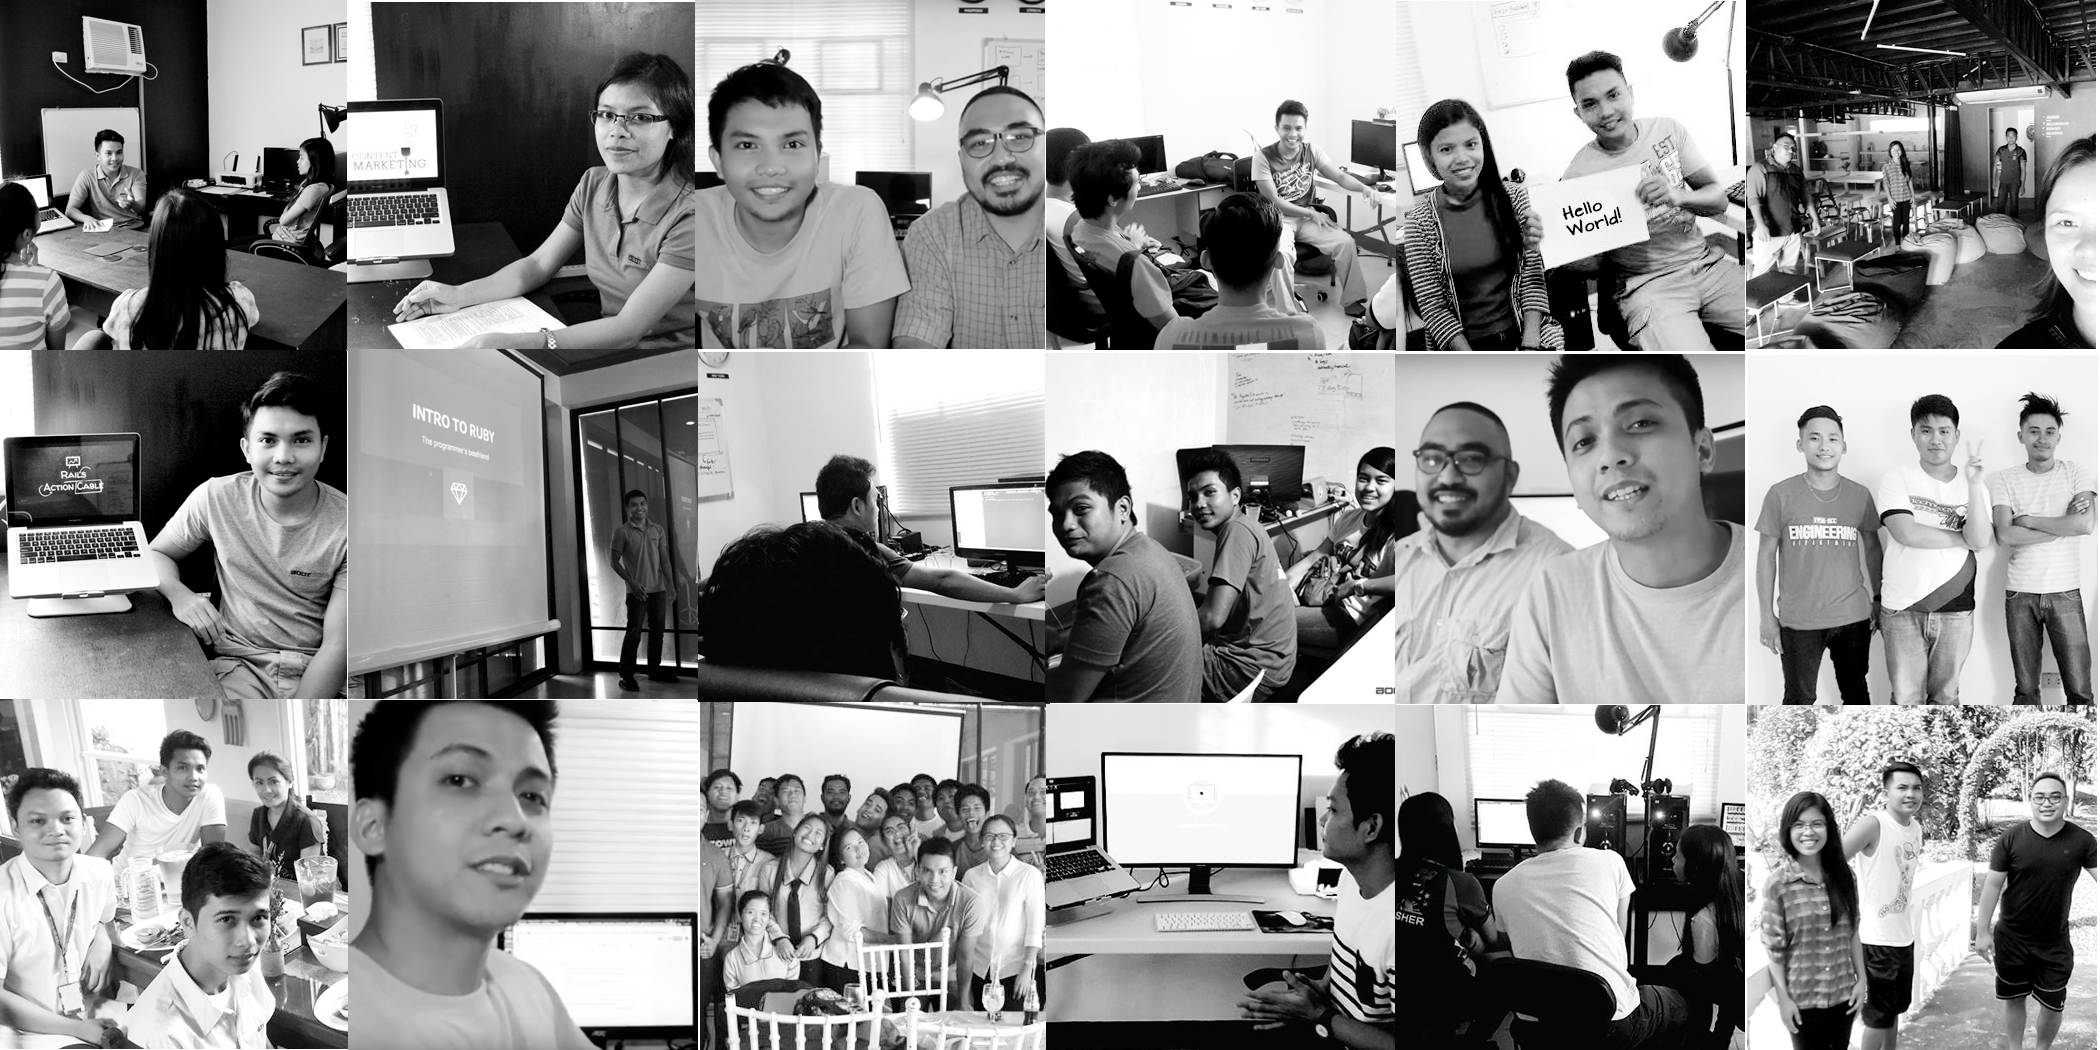 Bootyard Ruby on Rails Developers and Designers based in the Philippines